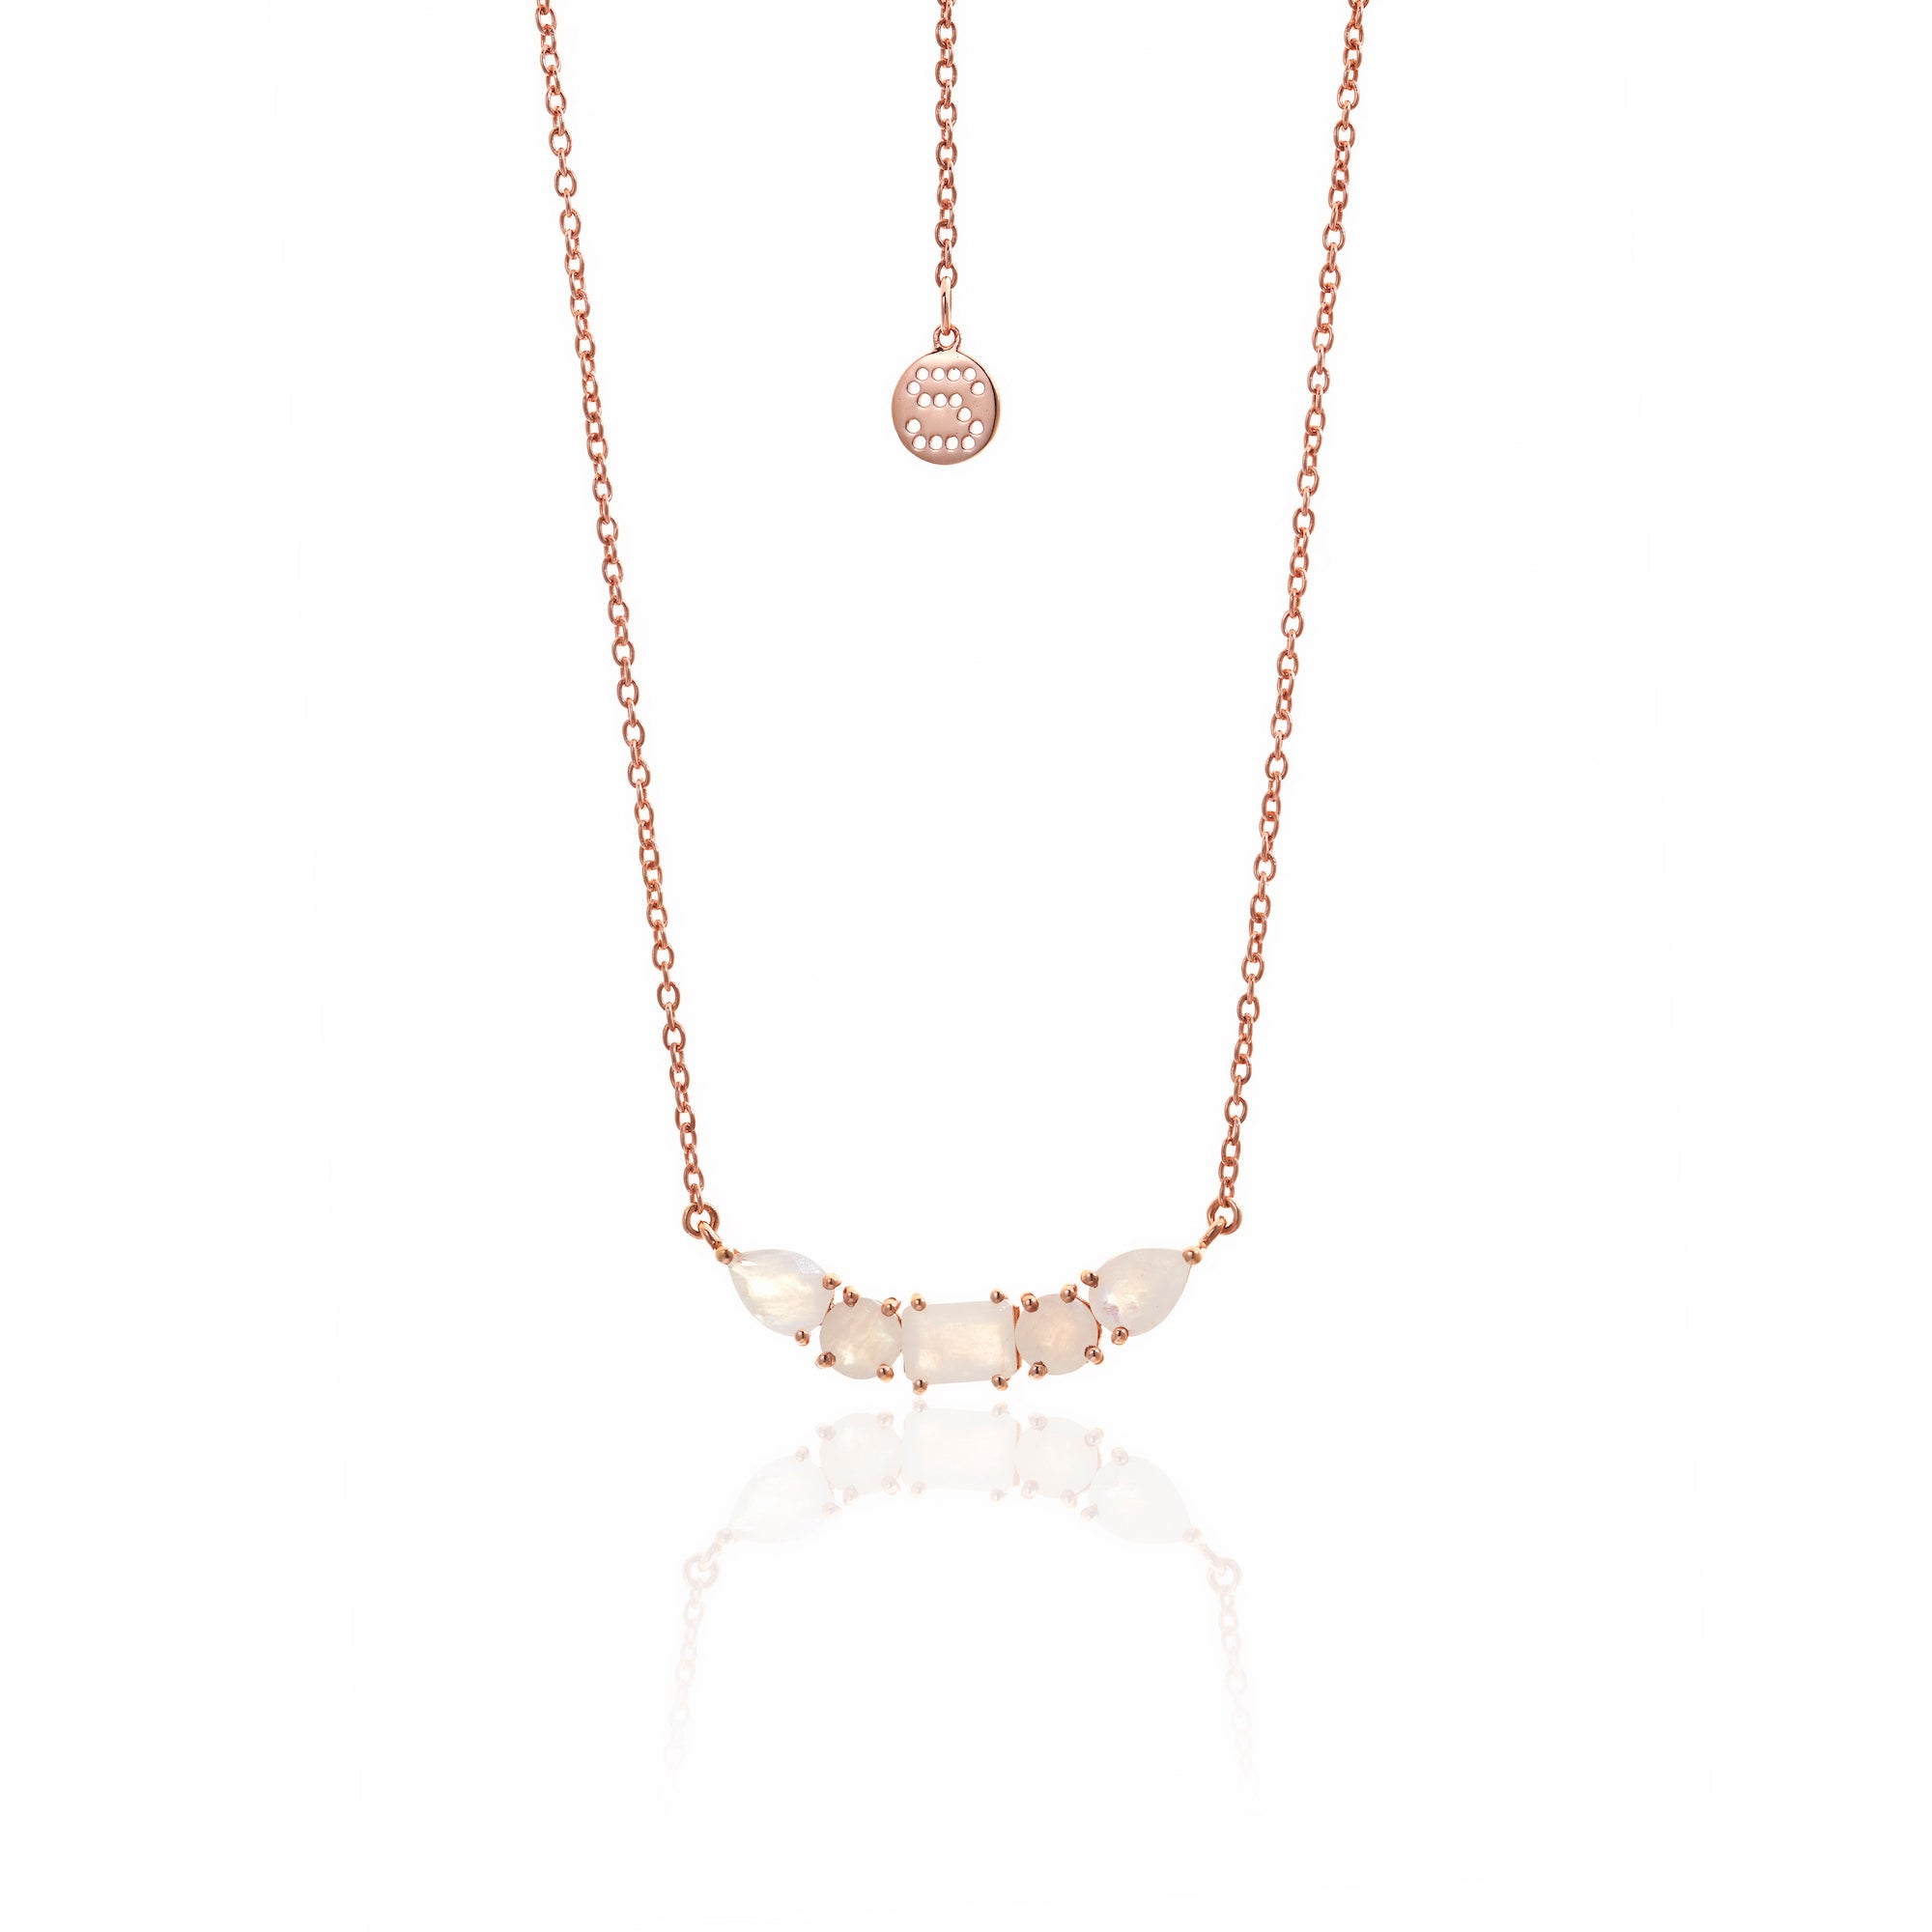 SILK&Steel Jewellery Amore Moonstone and Rose Gold Necklace from La Dolce Vita Collection